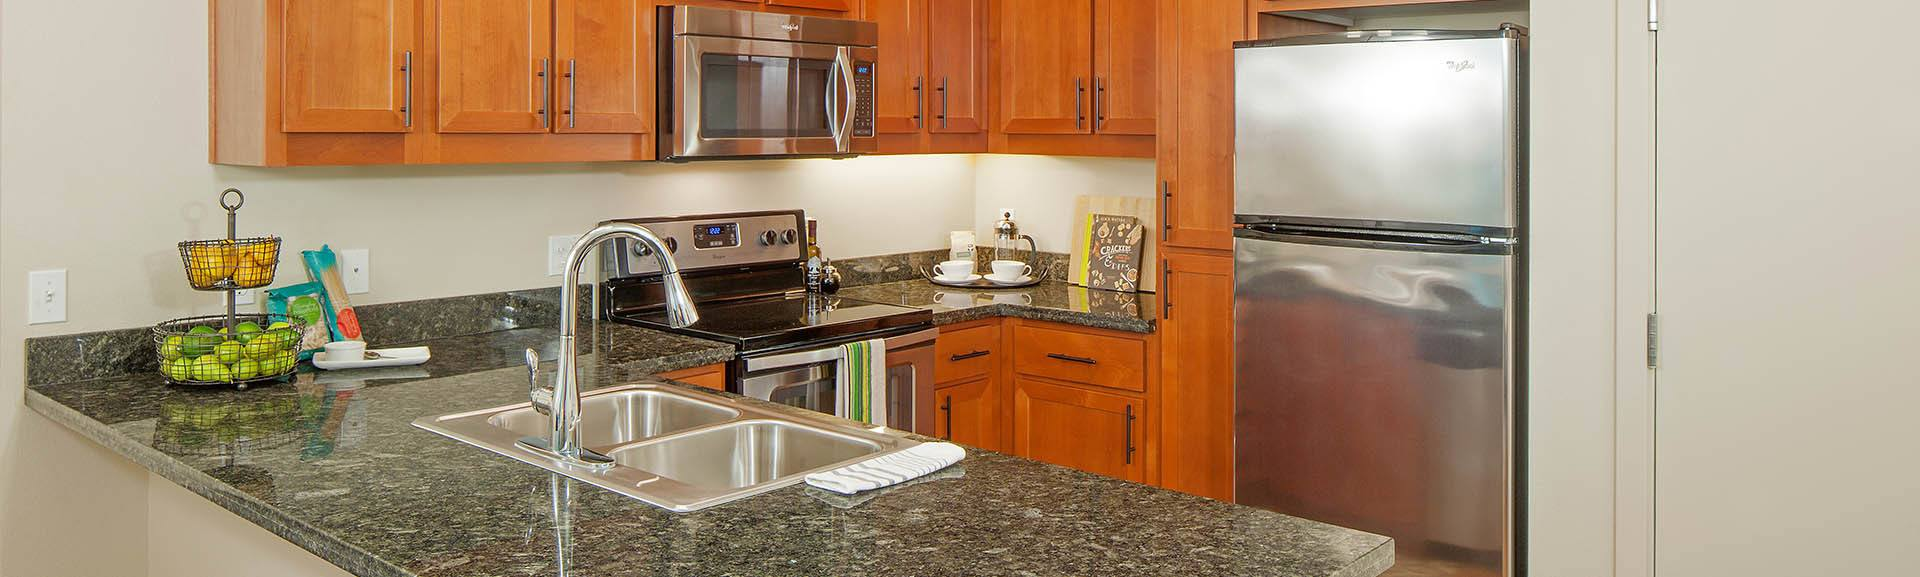 View our floor plans at Eddyline at Bridgeport on our website